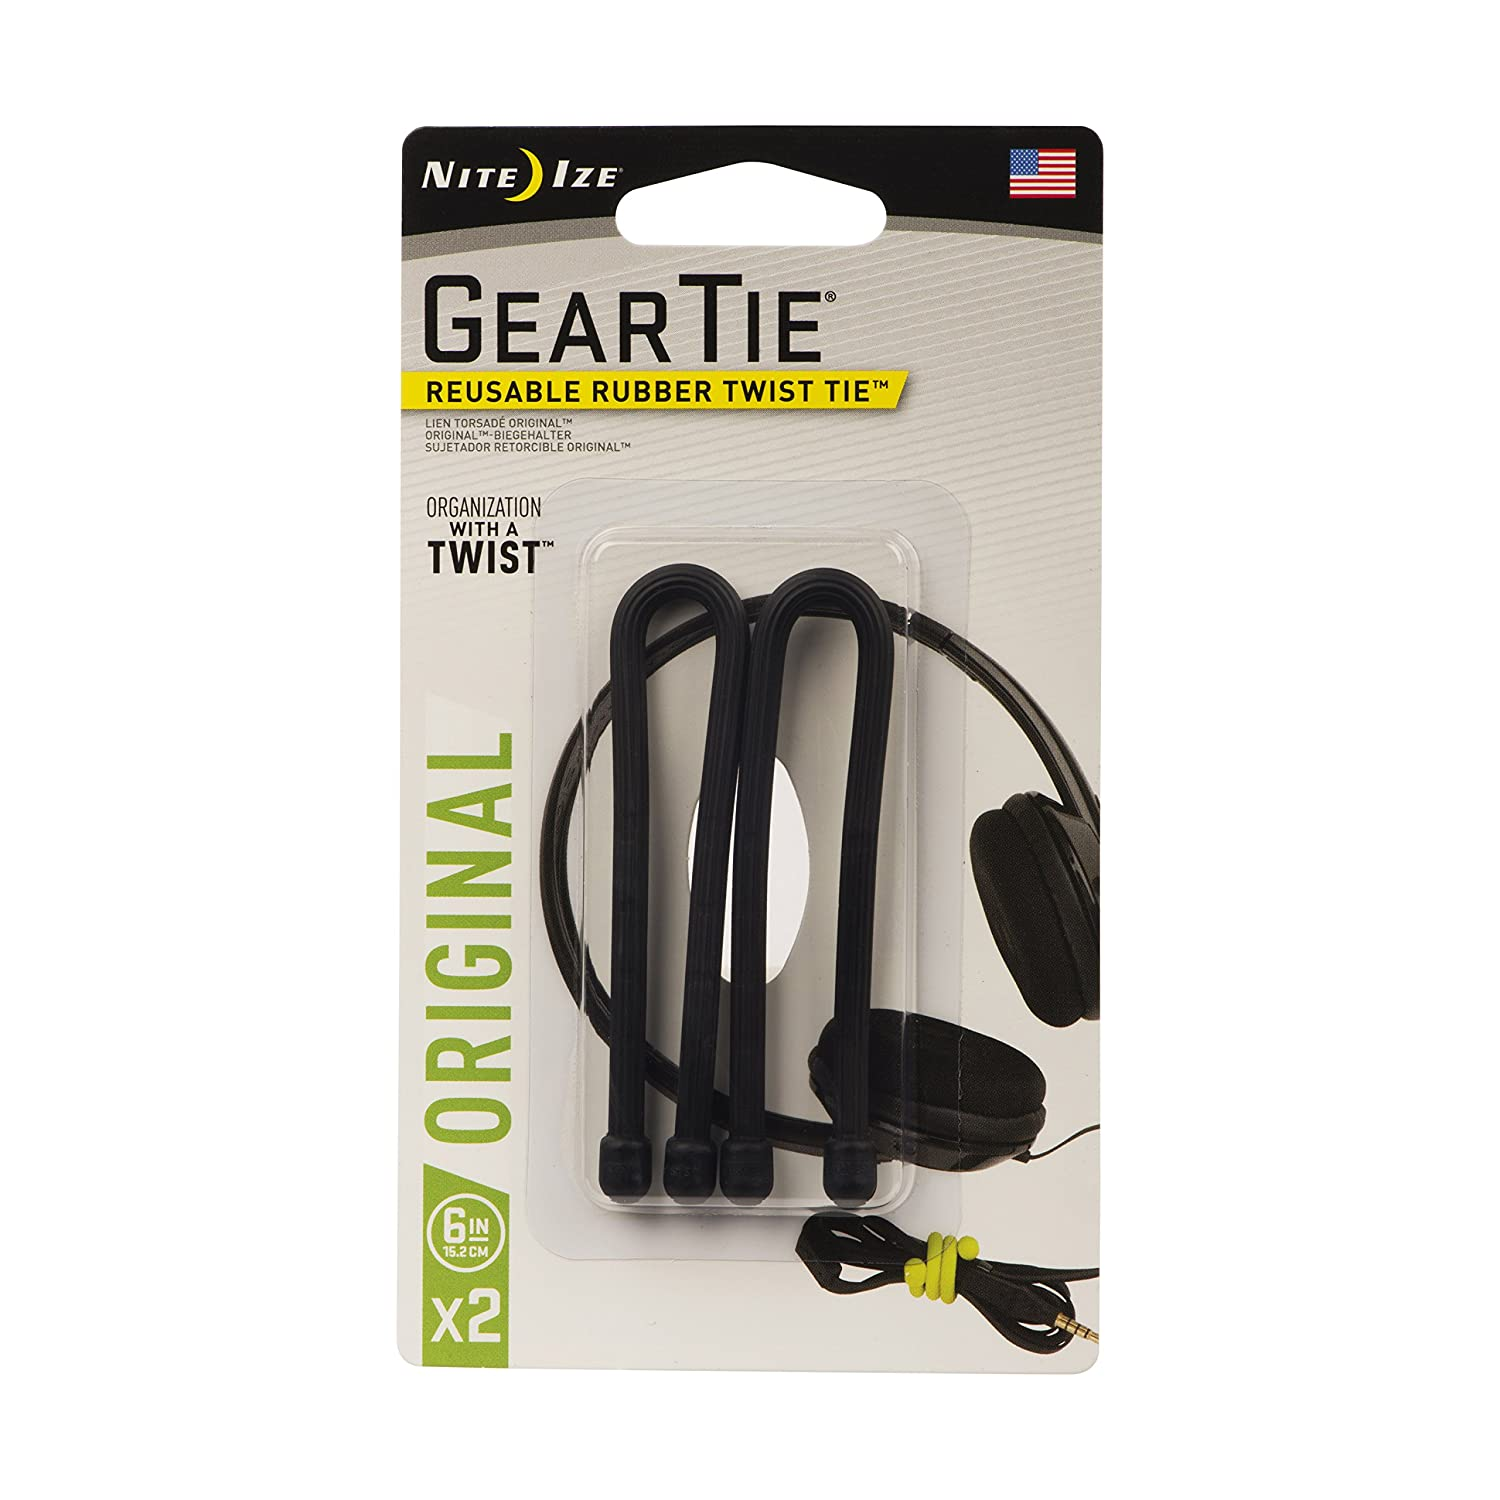 Nite Ize Original Gear Tie, Reusable Rubber Twist Tie, 6-Inch, Black, 2 Pack, Made in the USA